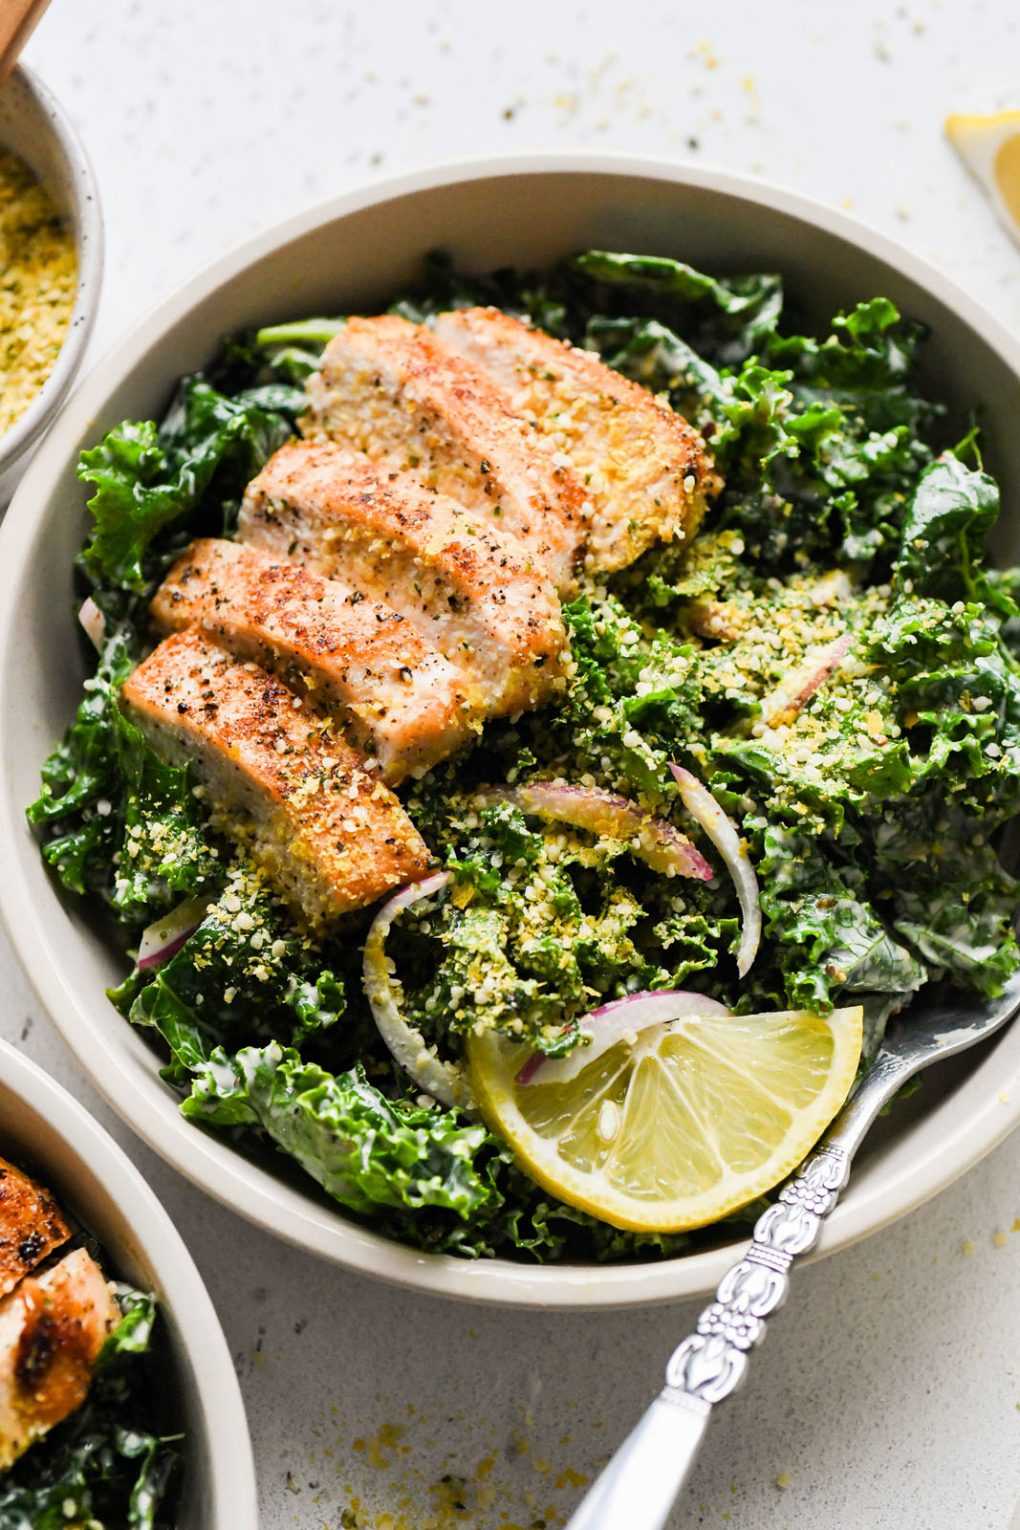 Overhead shot of a large white bowl filled with a hearty kale chicken caesar salad. Topped with a dairy free hemp heart parmesan cheese. On a light background next to a lemon wedge and a small glimpse of the jar of caesar salad dressing.